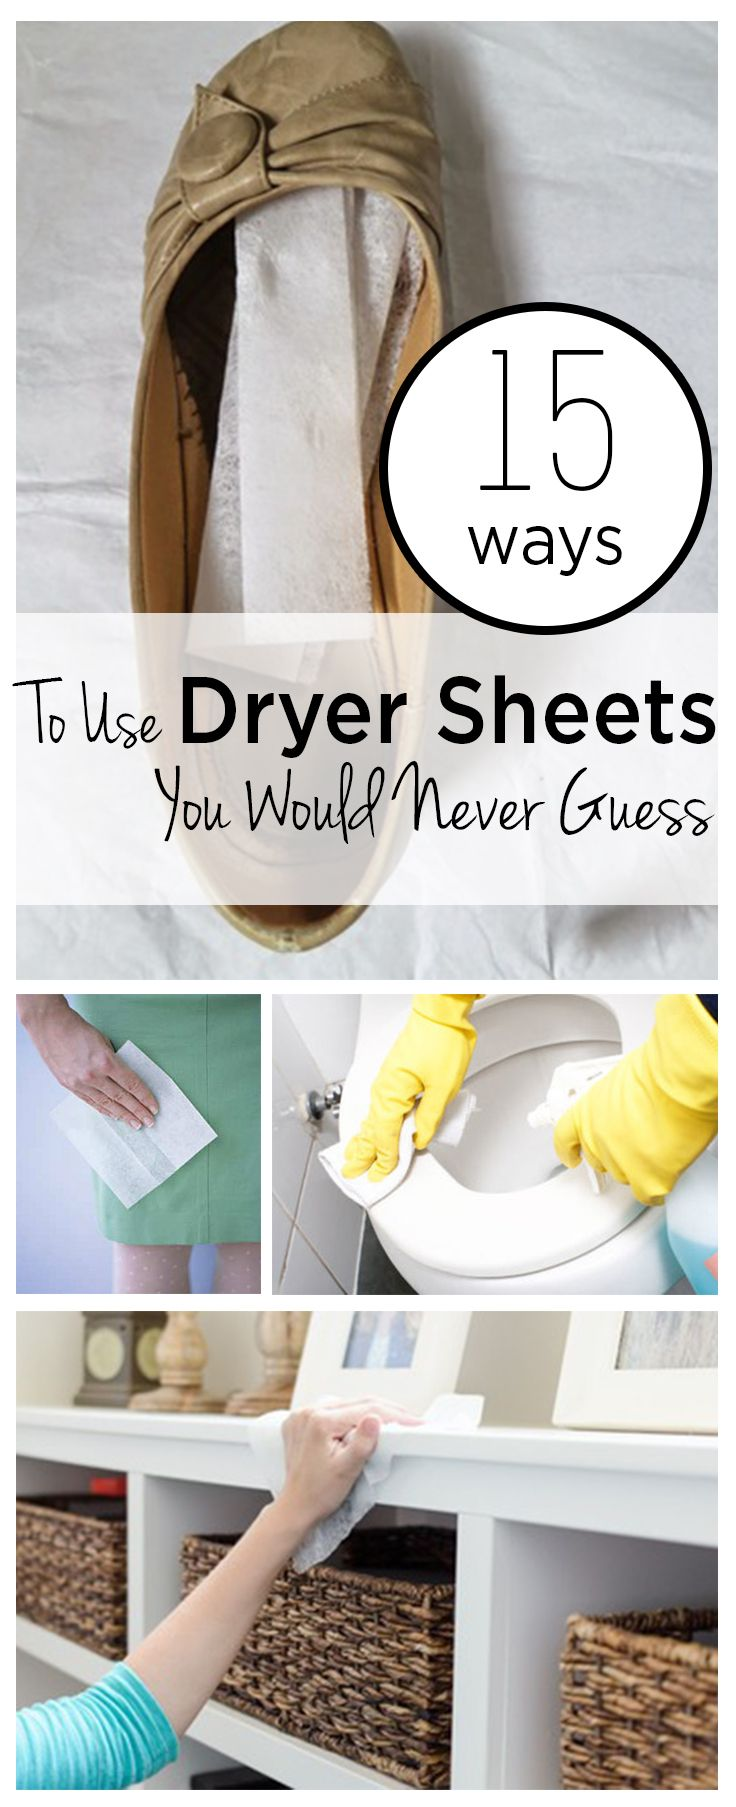 Ways To Use Dryer Sheets That You Would Never Guess Popular - 14 brilliant cleaning hacks that will change the way you clean your home